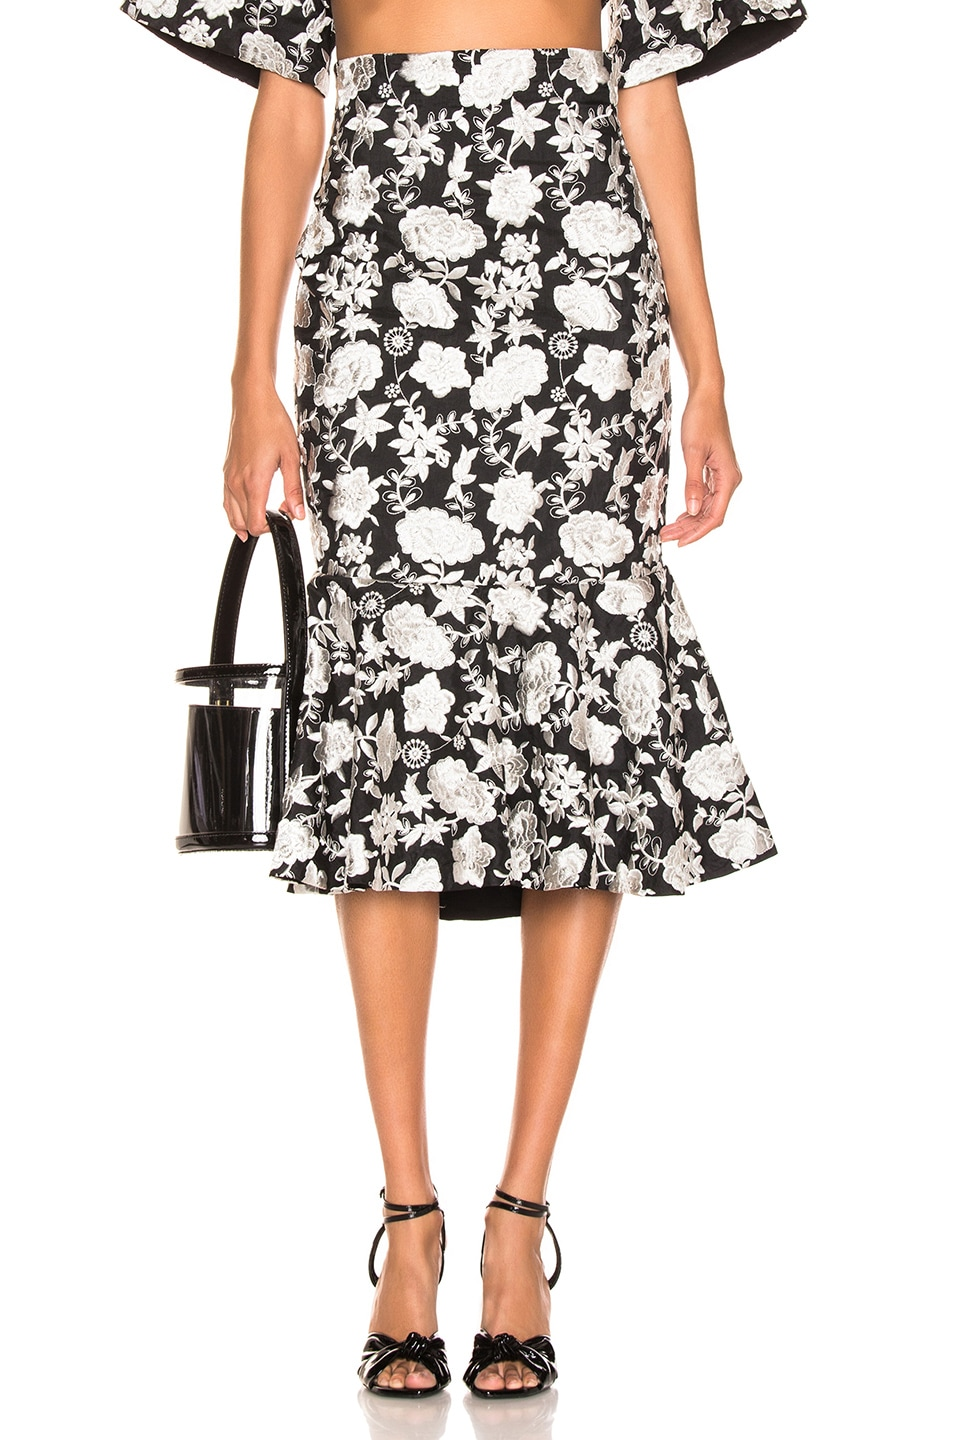 Image 1 of Alexis Reece Skirt in Ivory Floral Embroidery